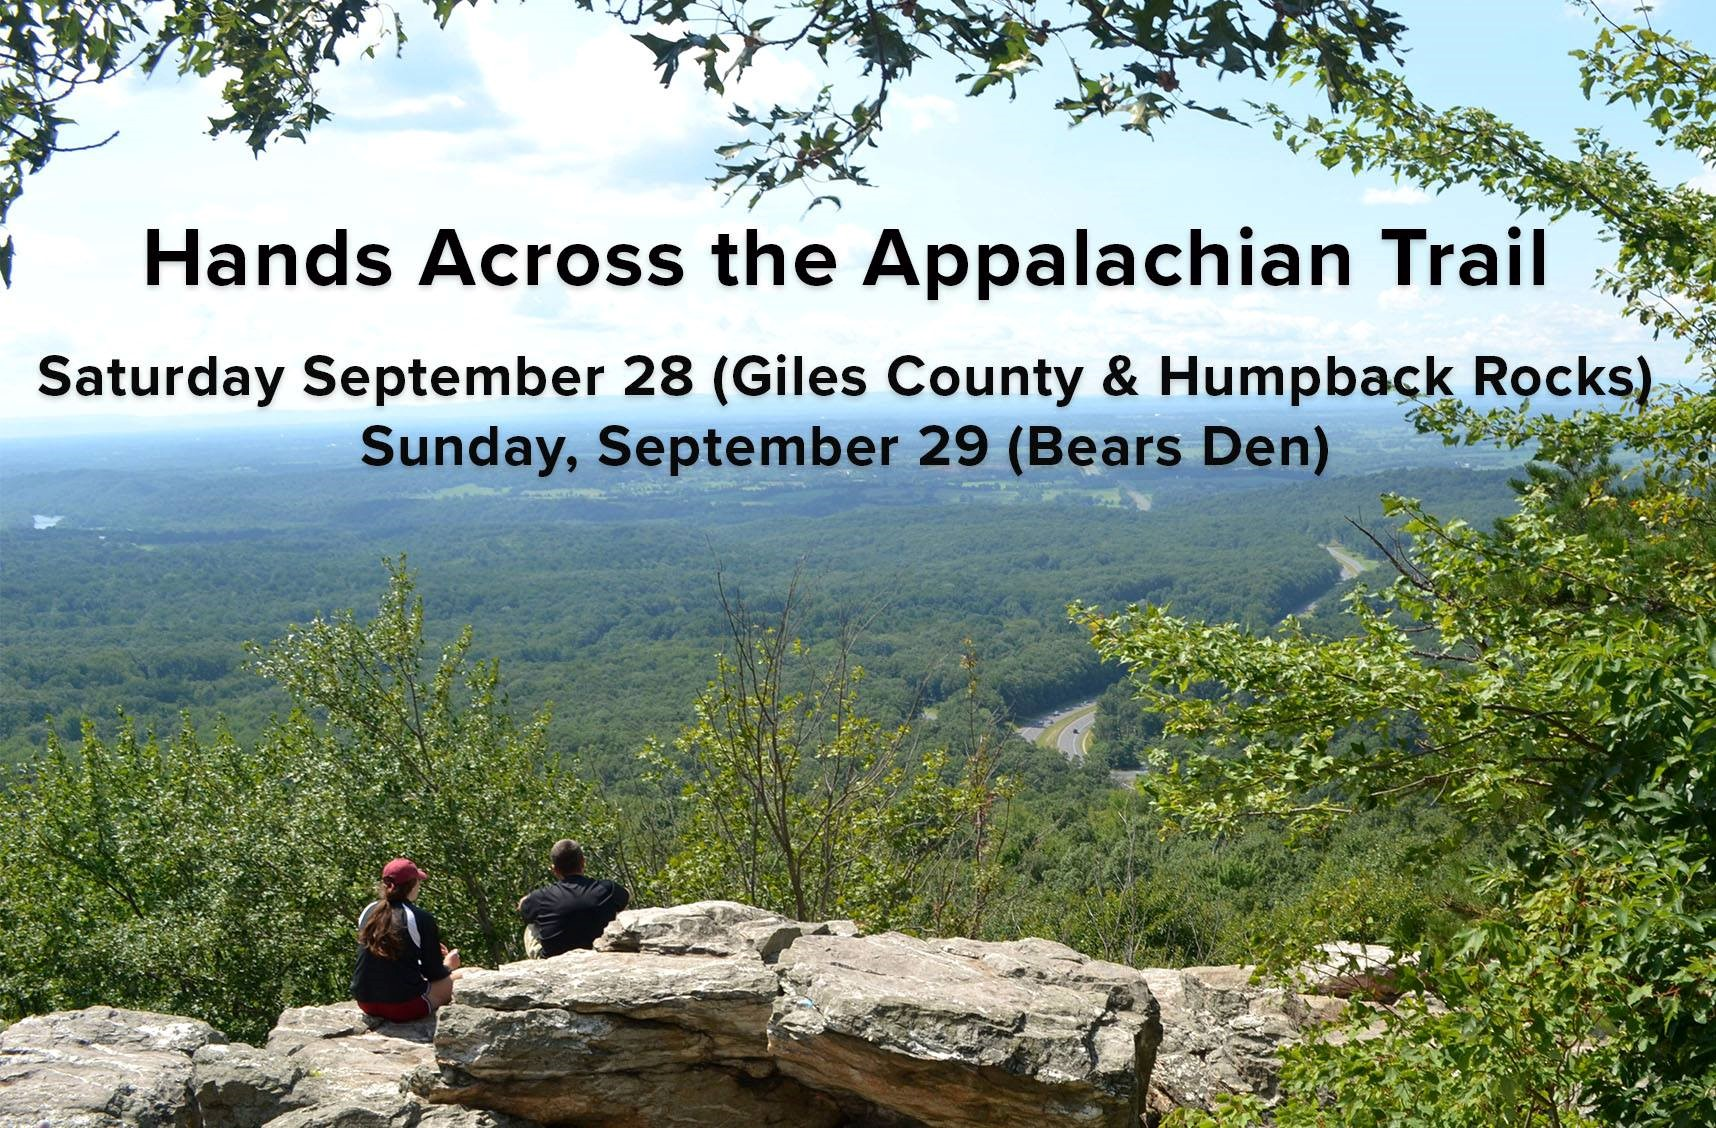 Allegheny-Blue Ridge Alliance – Protecting the heritage